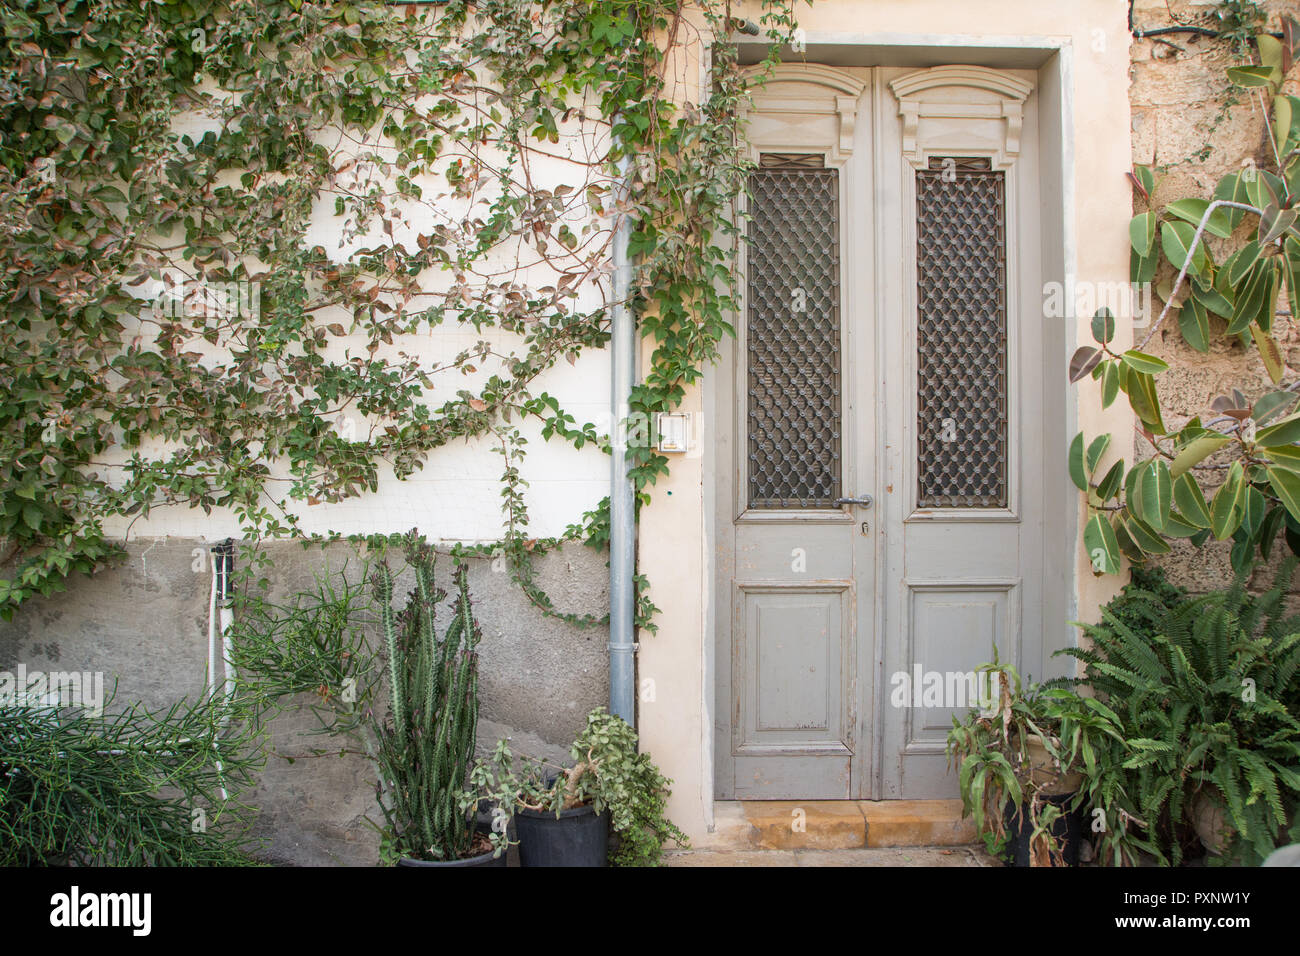 Old light grey door with an overgrown wall, mediterranean atmosphere, old town in Jaffa, israel. - Stock Image